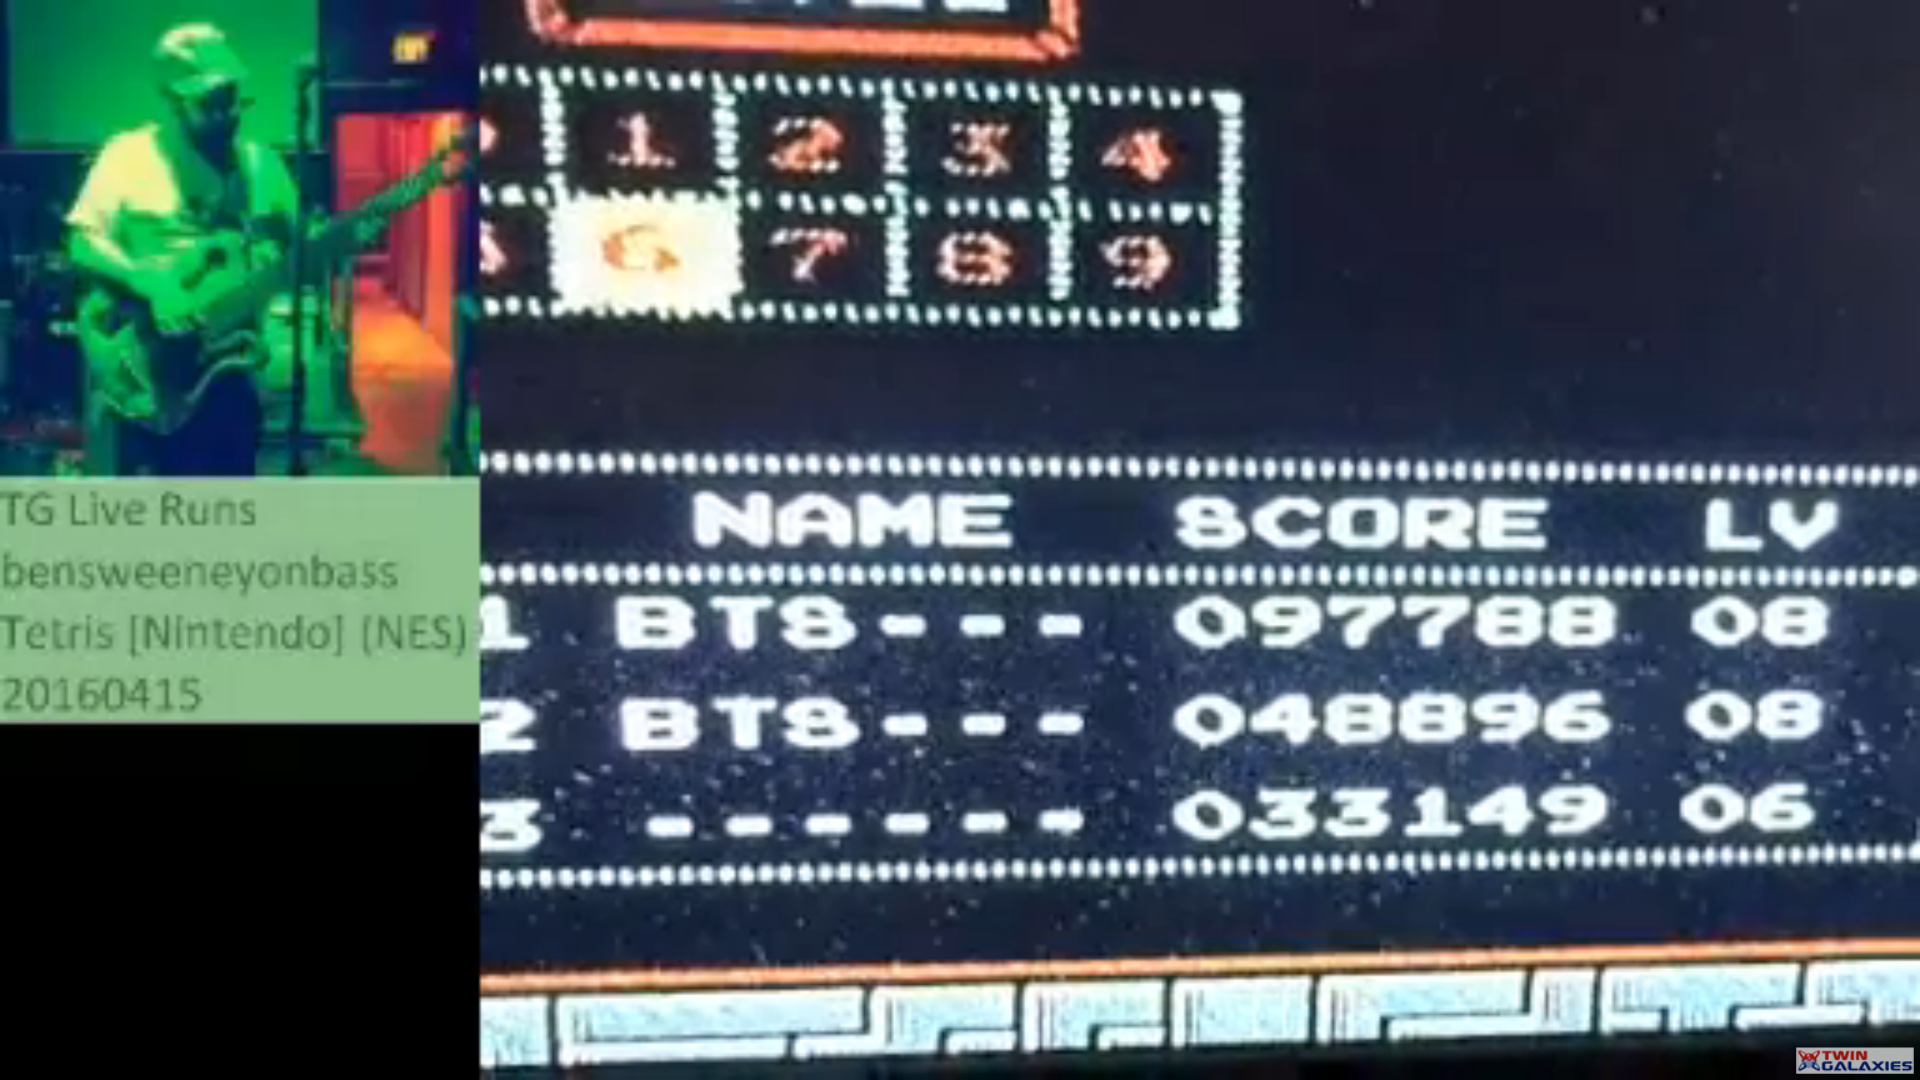 Tetris 97,788 points